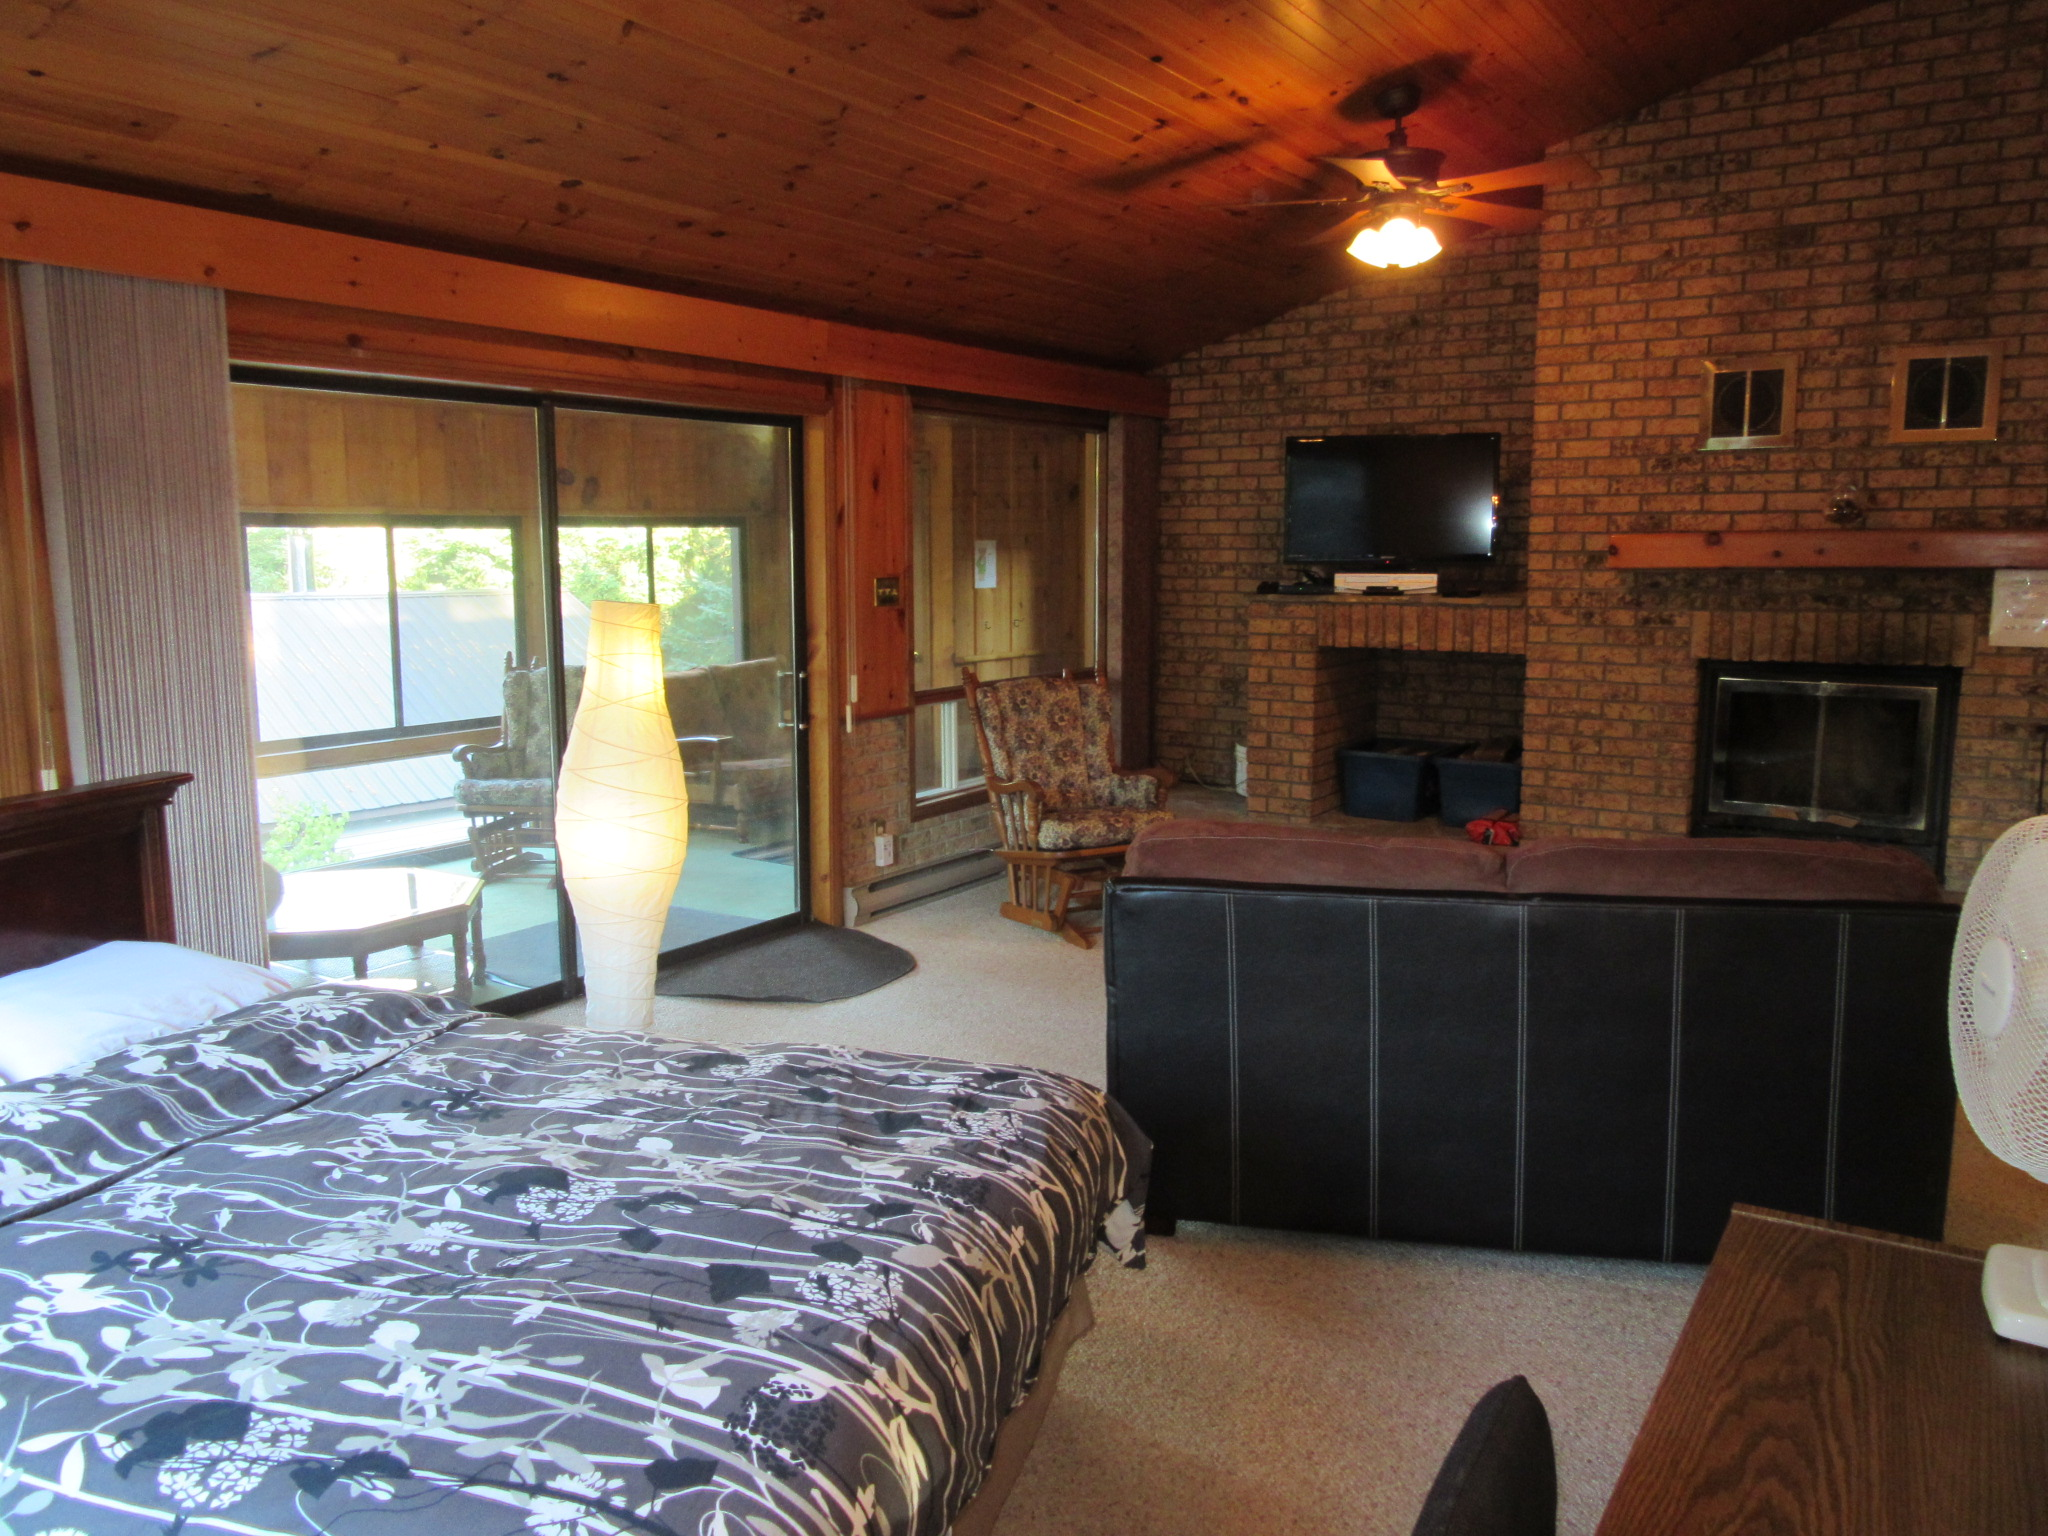 Upscale Lakeview Chalet Private Hot Tub and Fireplace